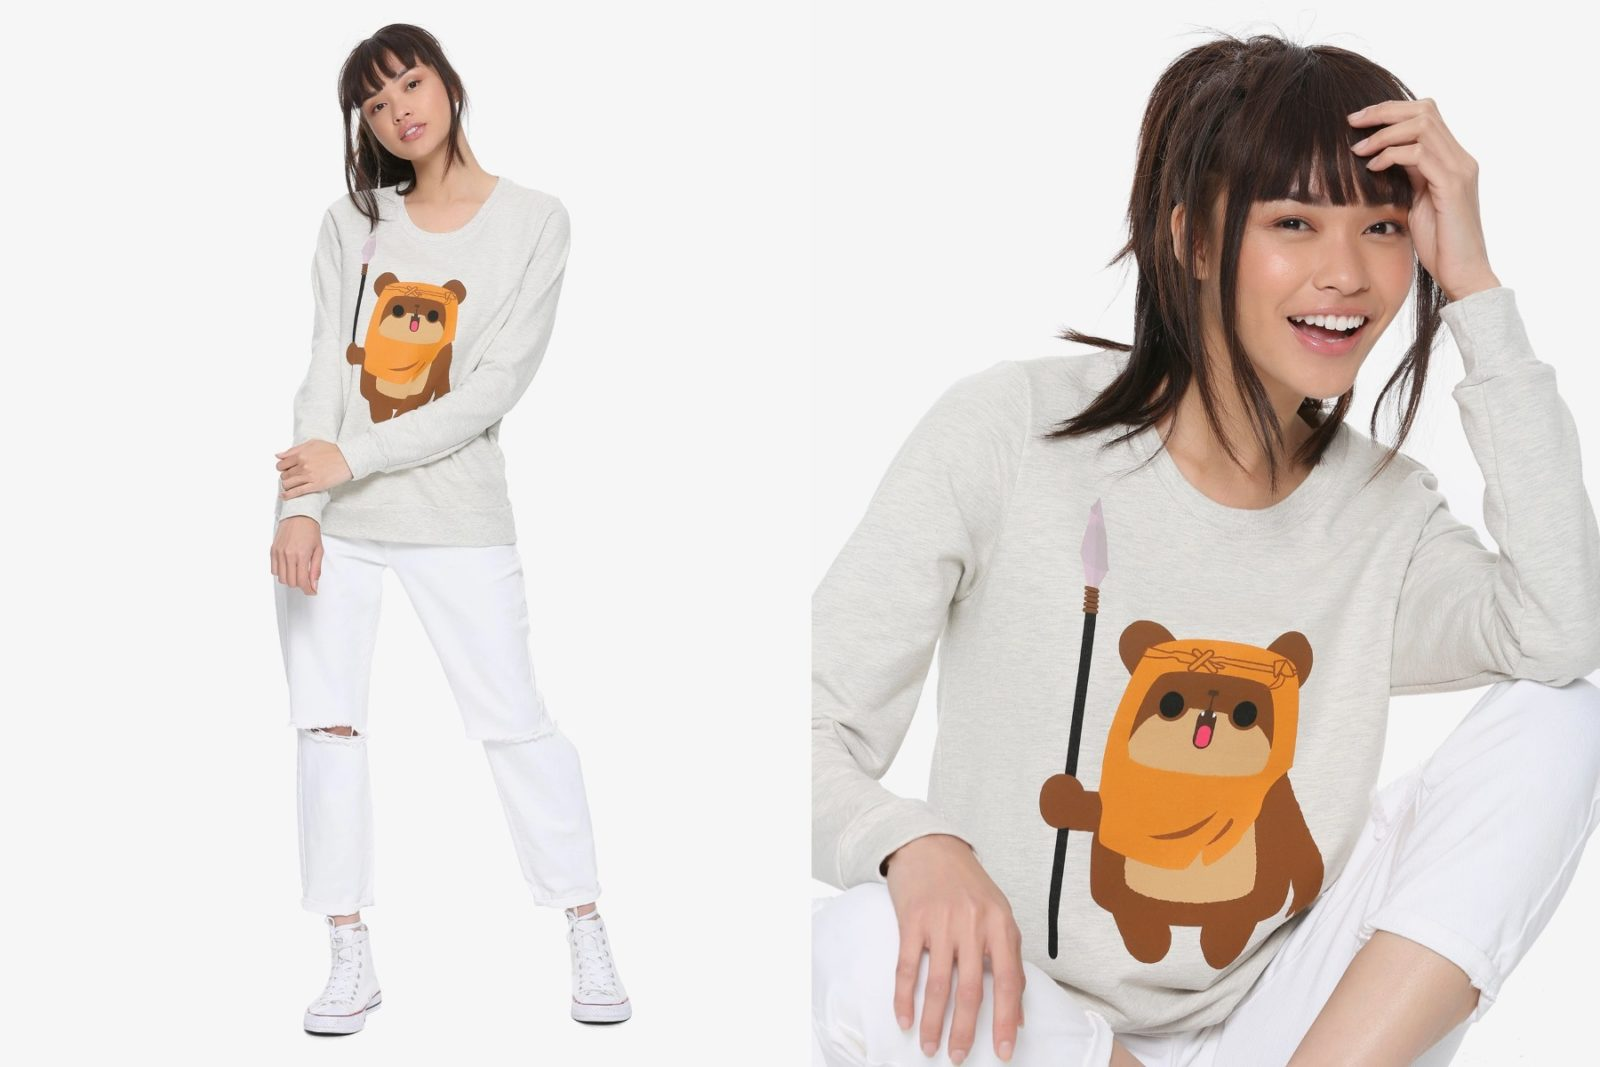 Women's Her Universe x Star Wars Chibi Ewok Sweatshirt at Hot Topic